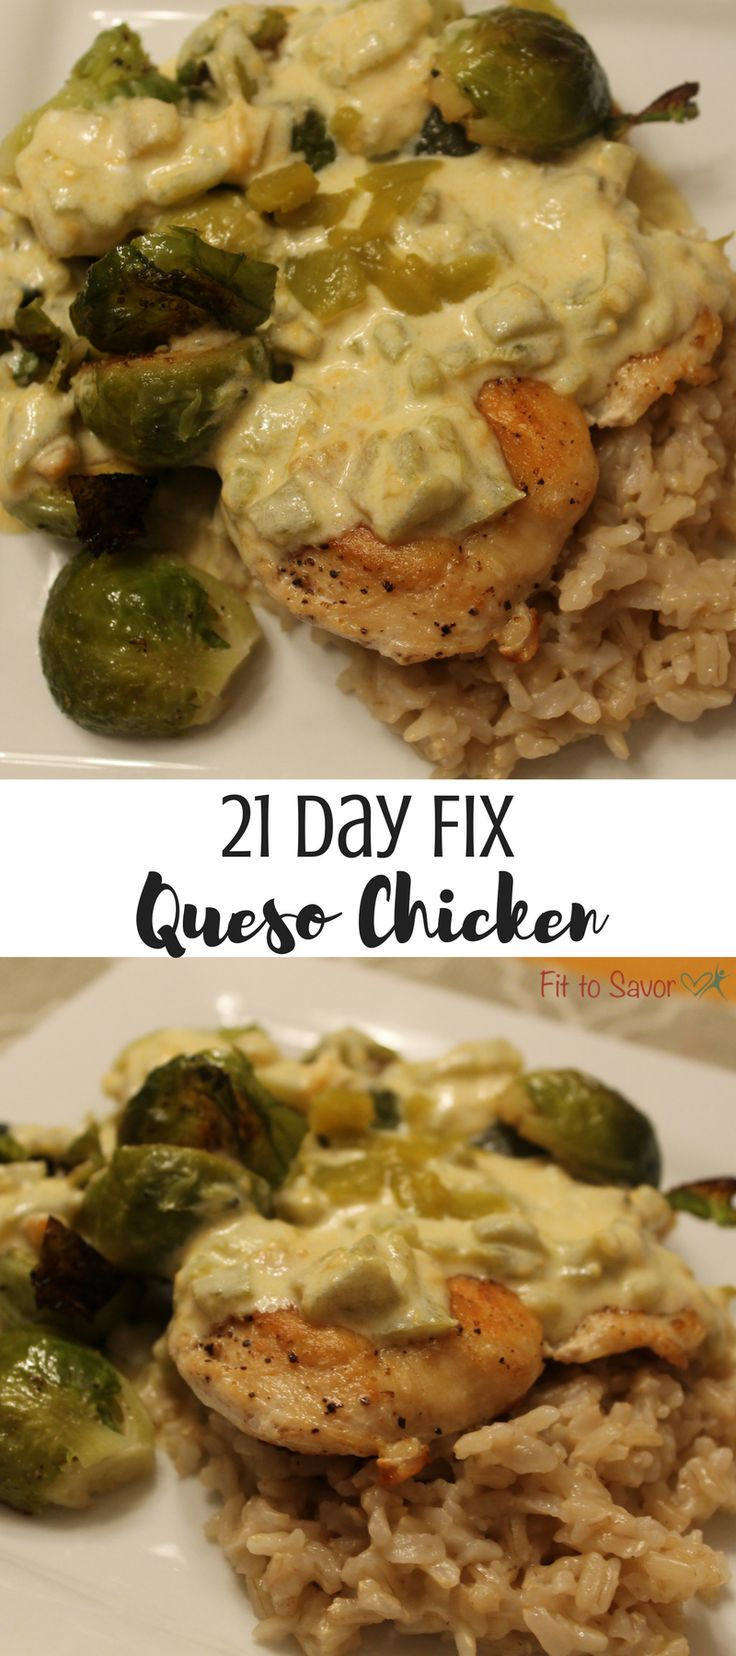 21 Day Fix friendly Chicken w/ Queso Sauce. The best use EVER for your blue container!